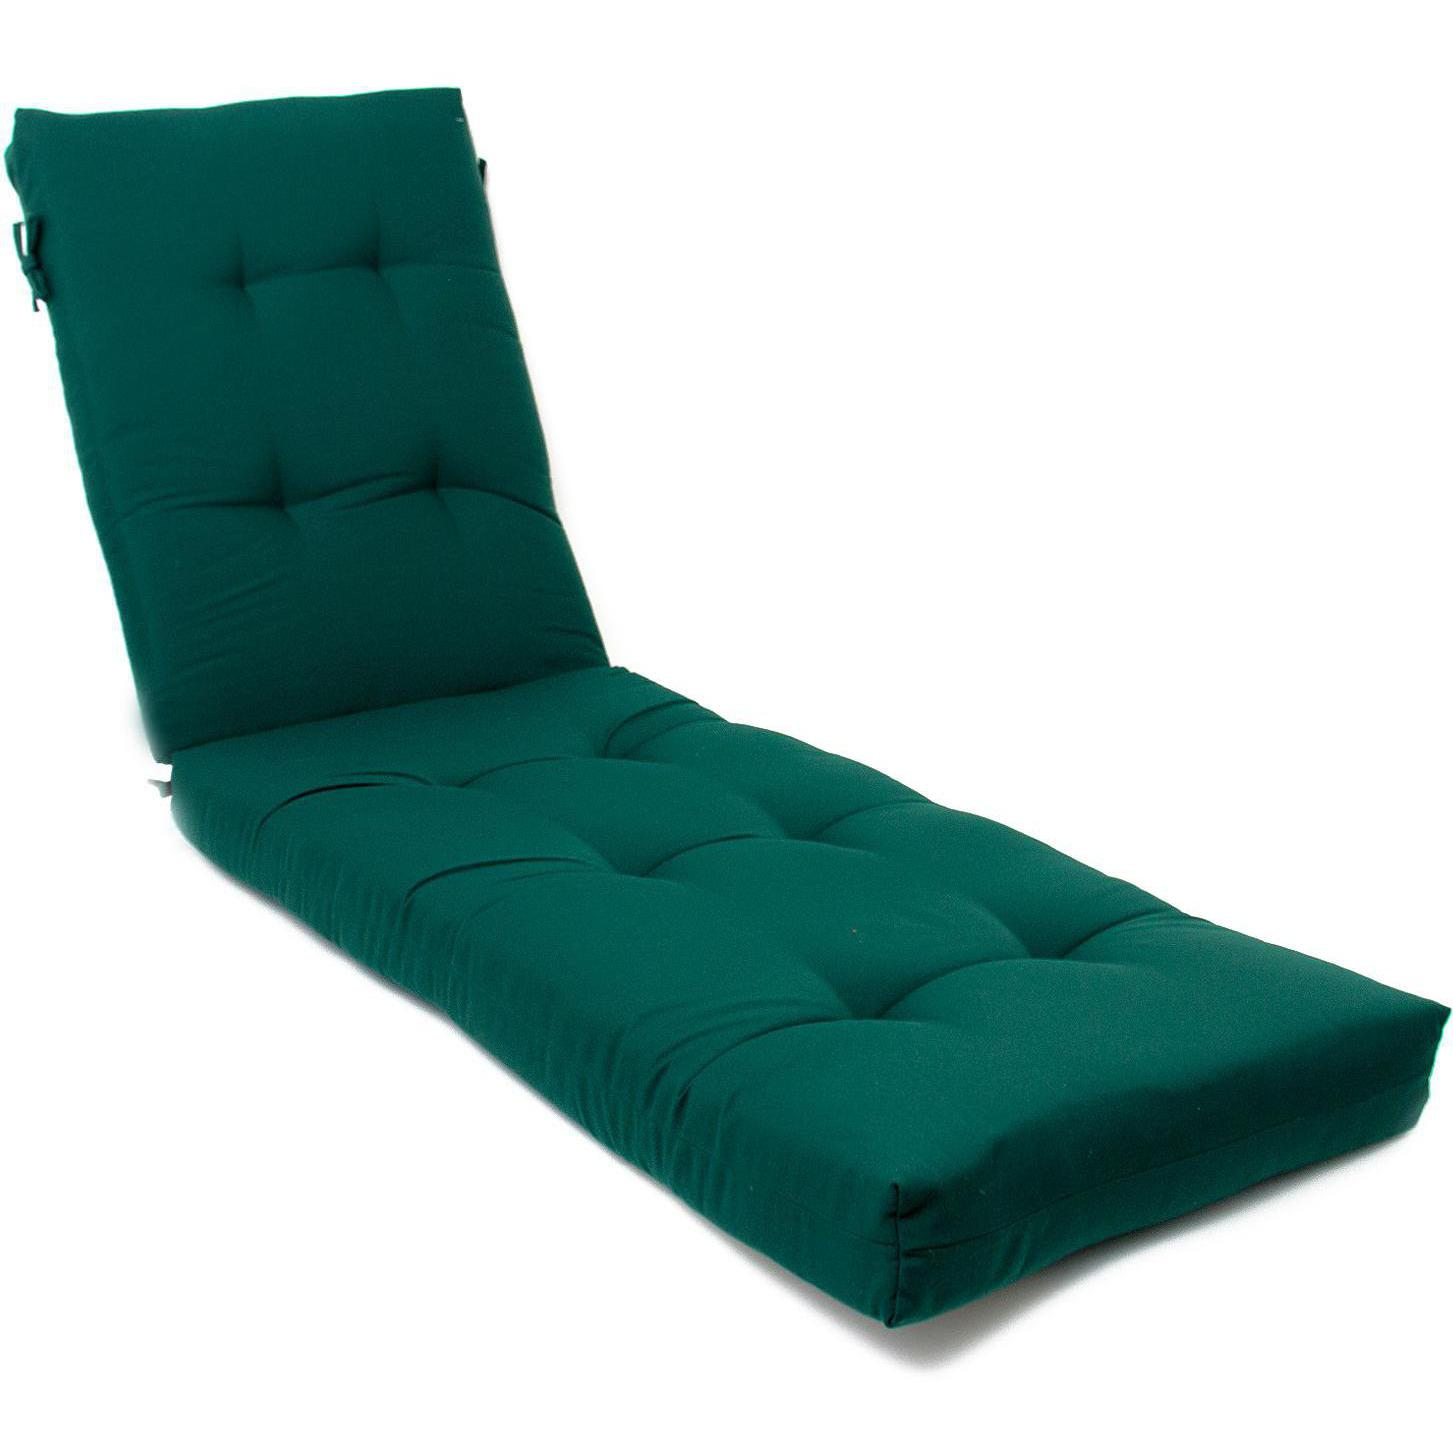 Extra Long Replacement Outdoor Chaise Lounge Cushion Canv